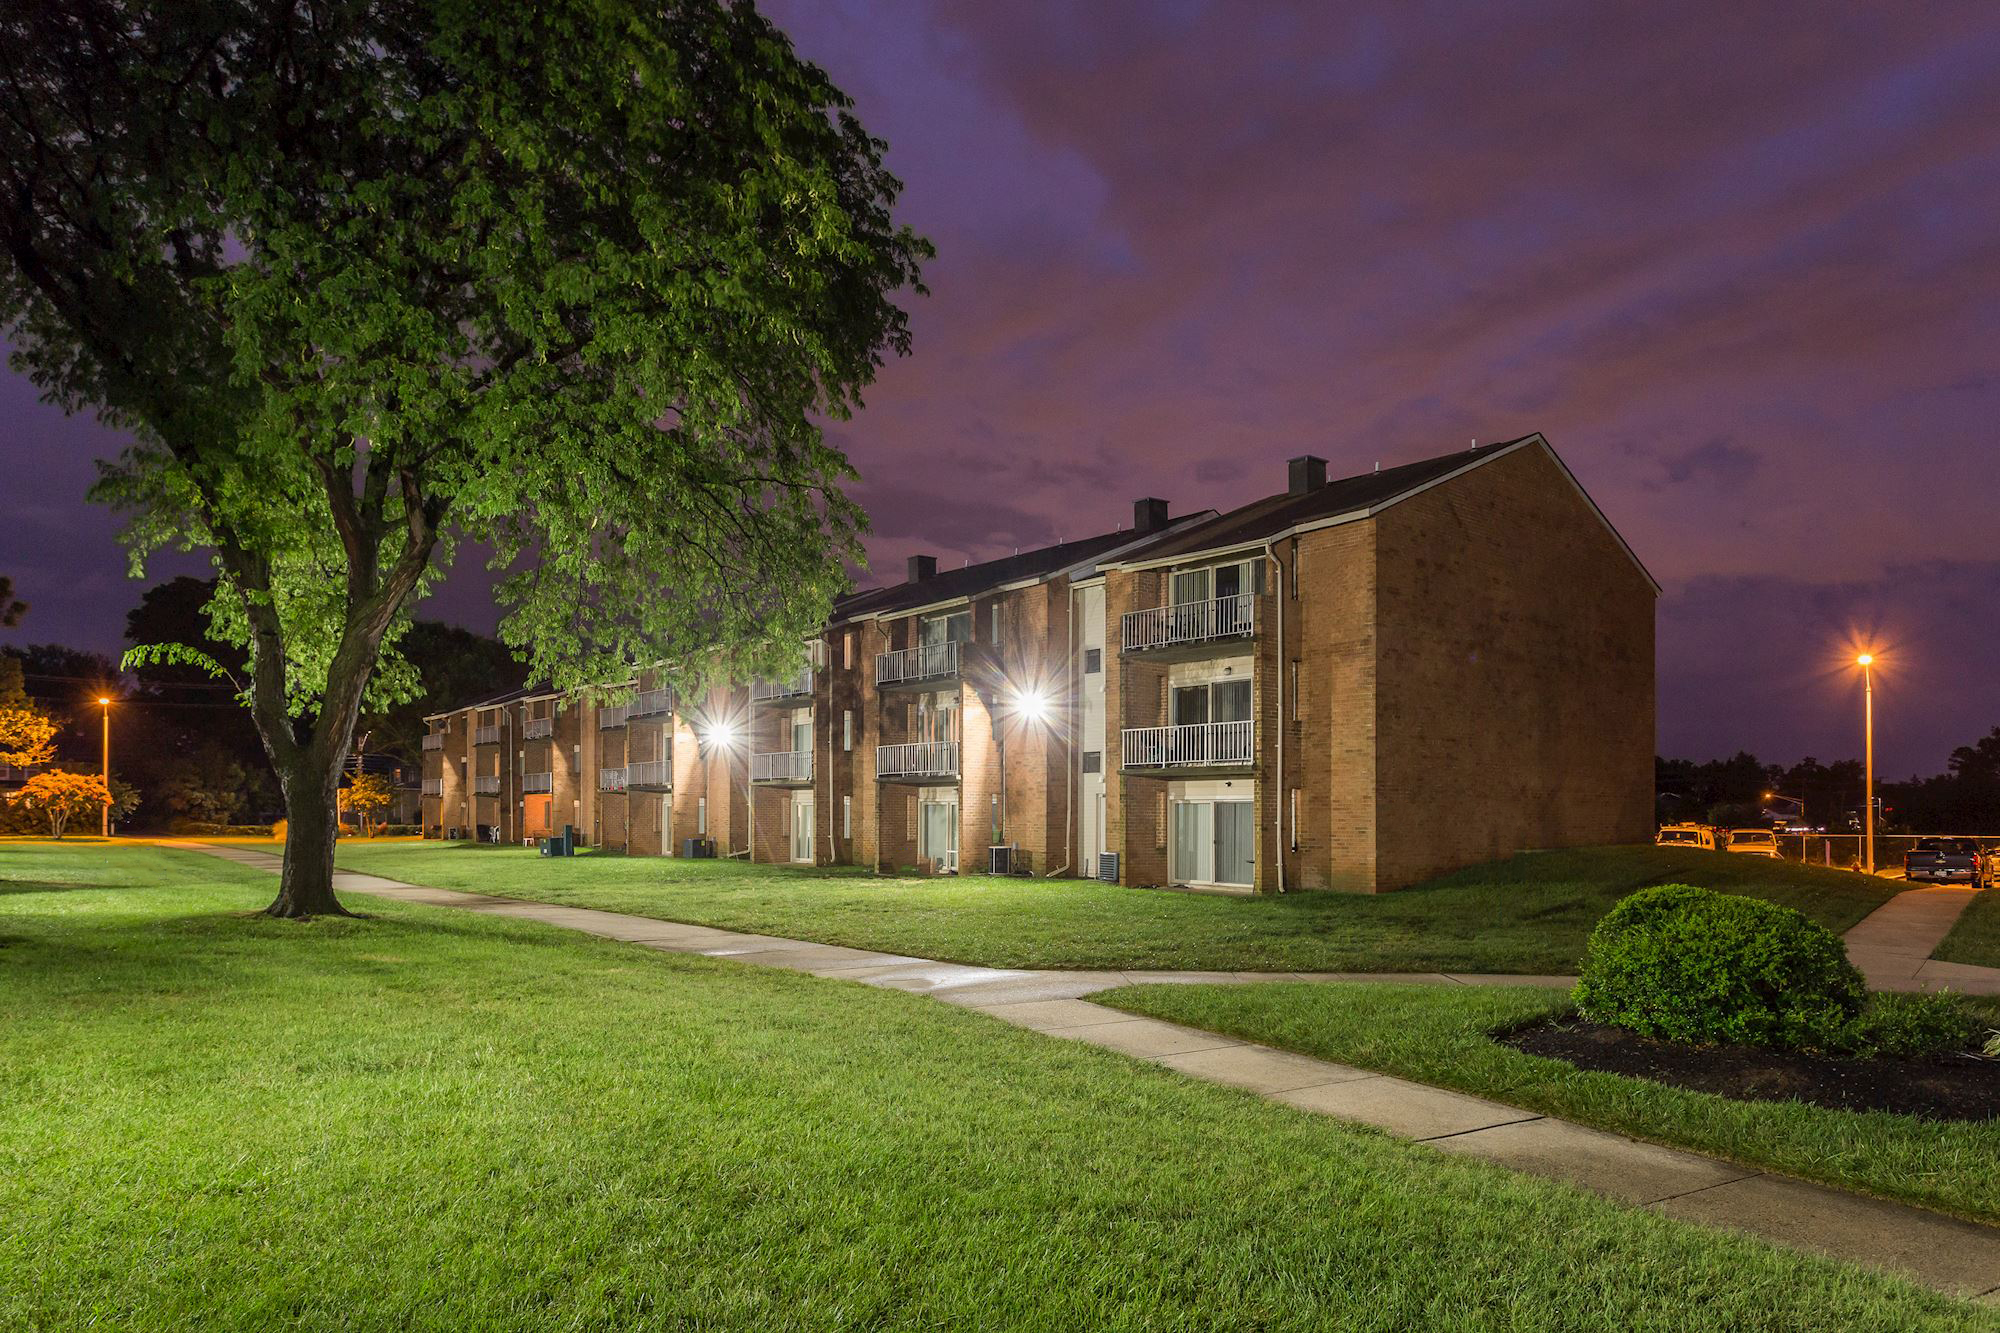 Rolling Park Apartments in Windsor Mill, MD - Night Photo